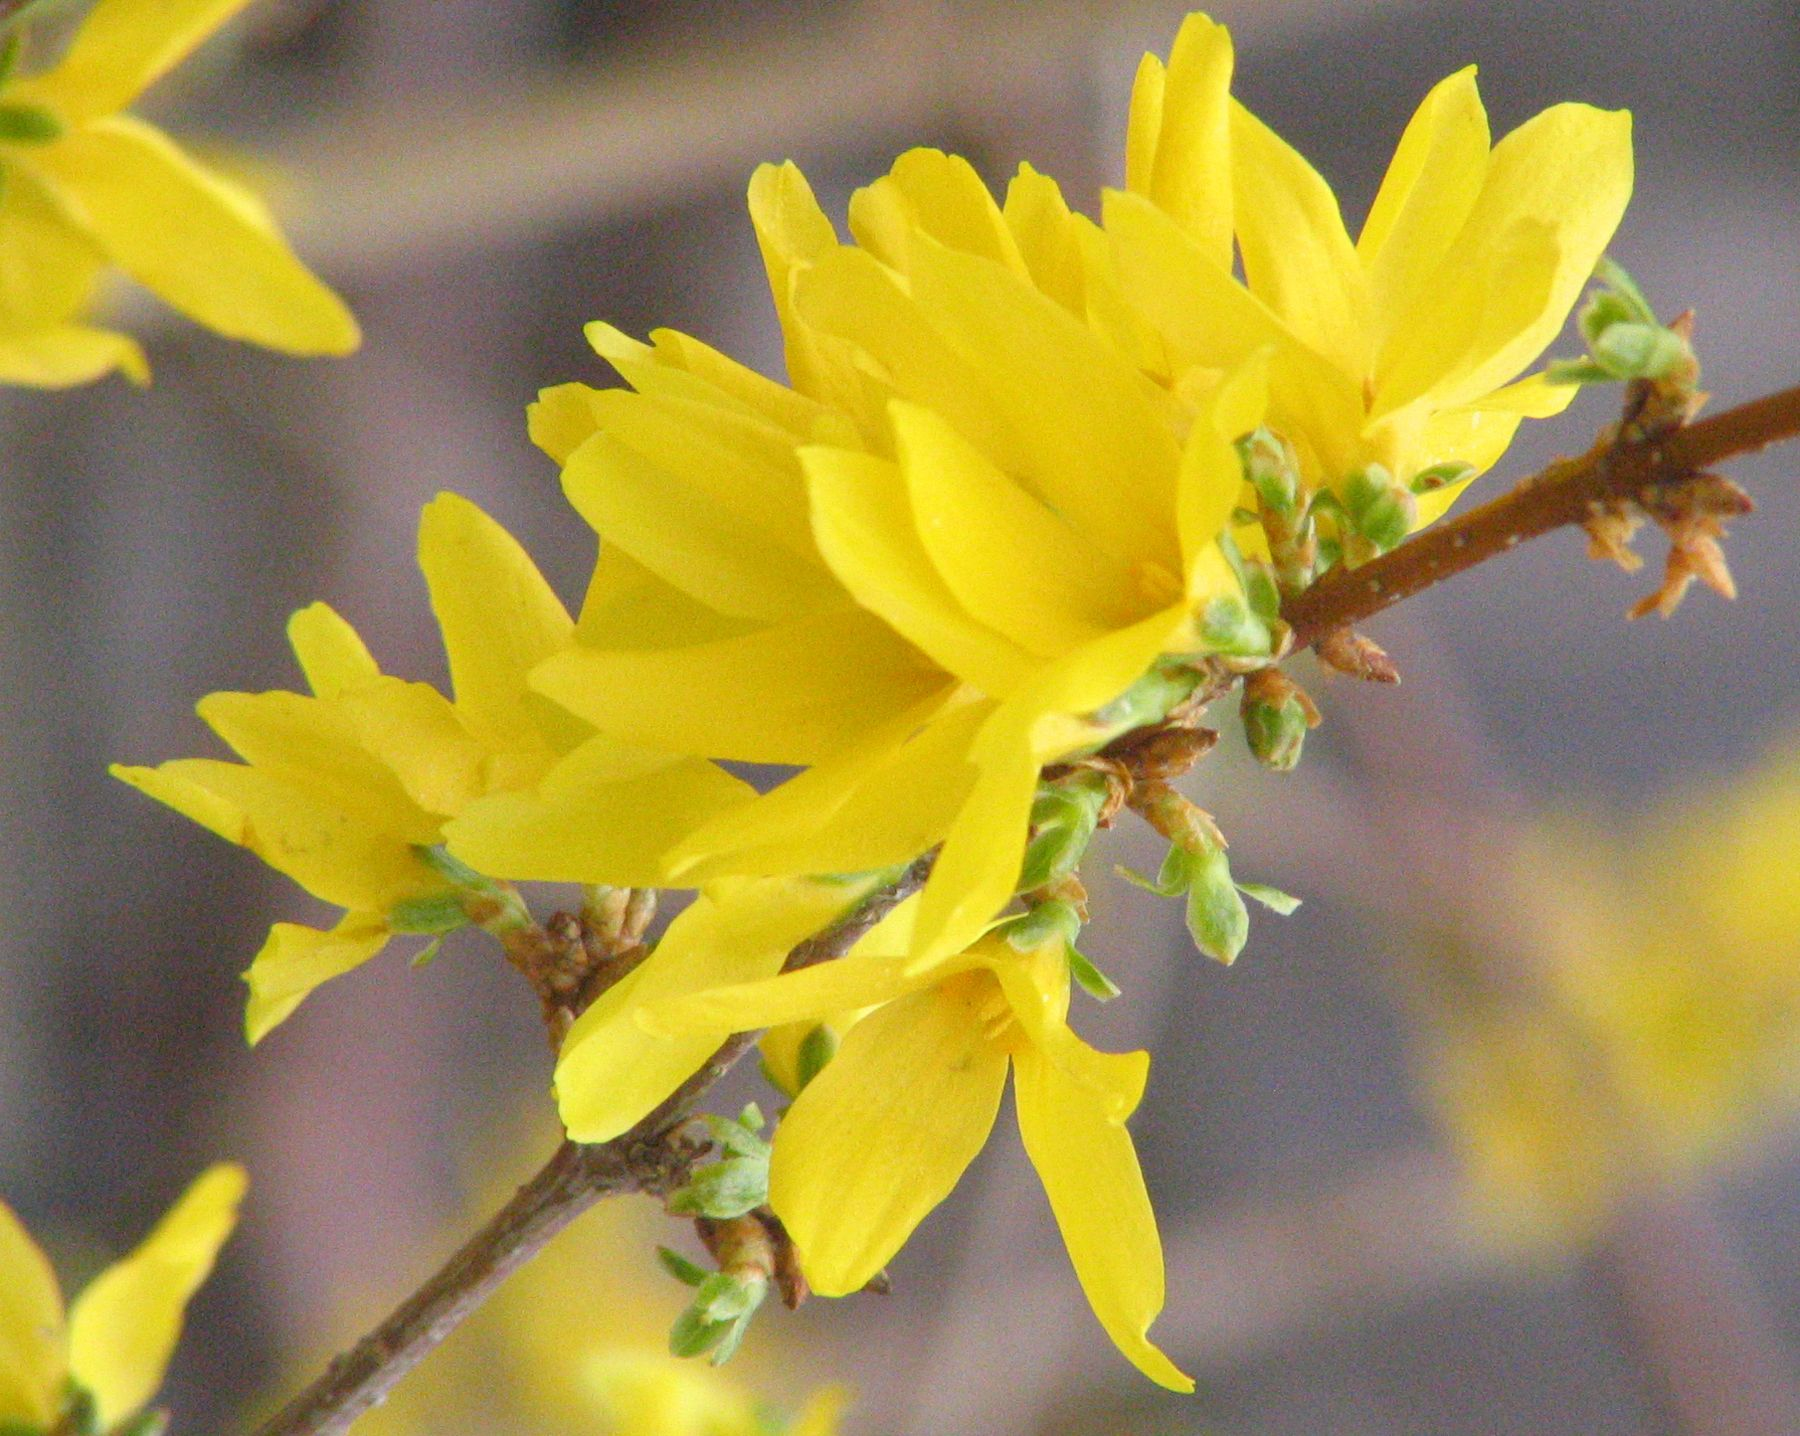 Forsythia Flower Of Brooklyn Picture Pictures Of Flowers